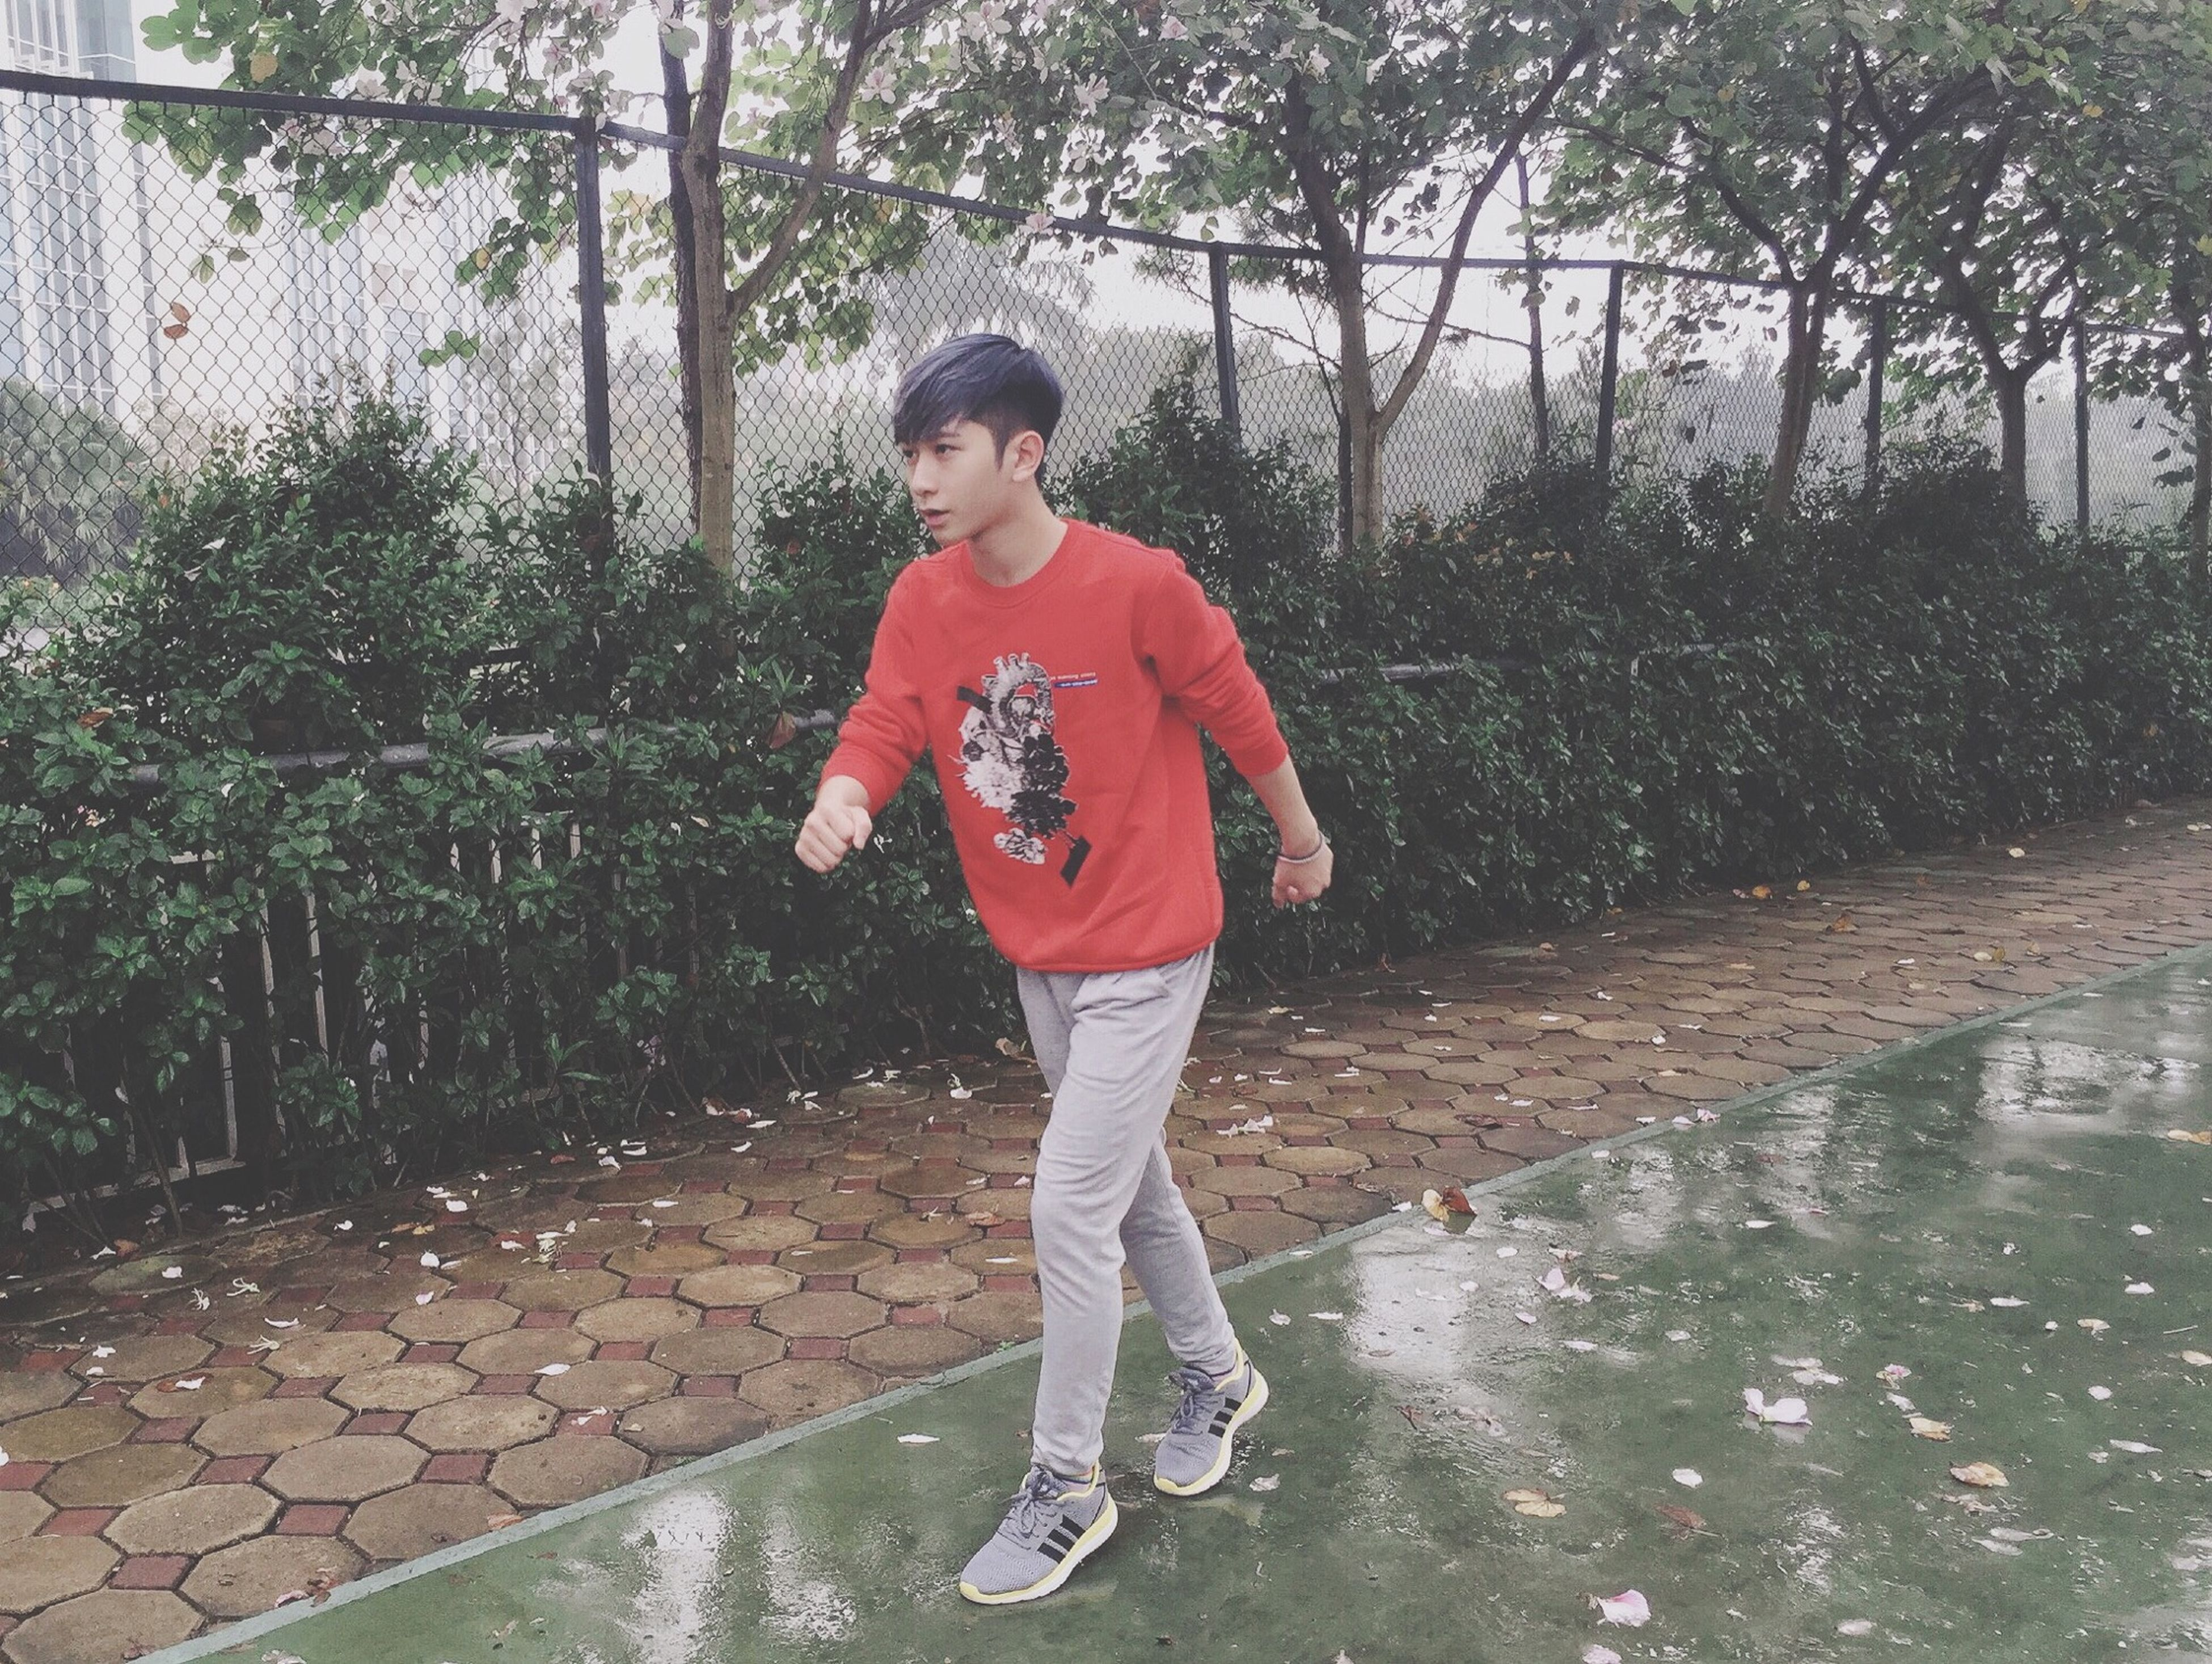 full length, childhood, person, elementary age, lifestyles, casual clothing, water, leisure activity, boys, girls, standing, innocence, tree, happiness, front view, cute, day, looking at camera